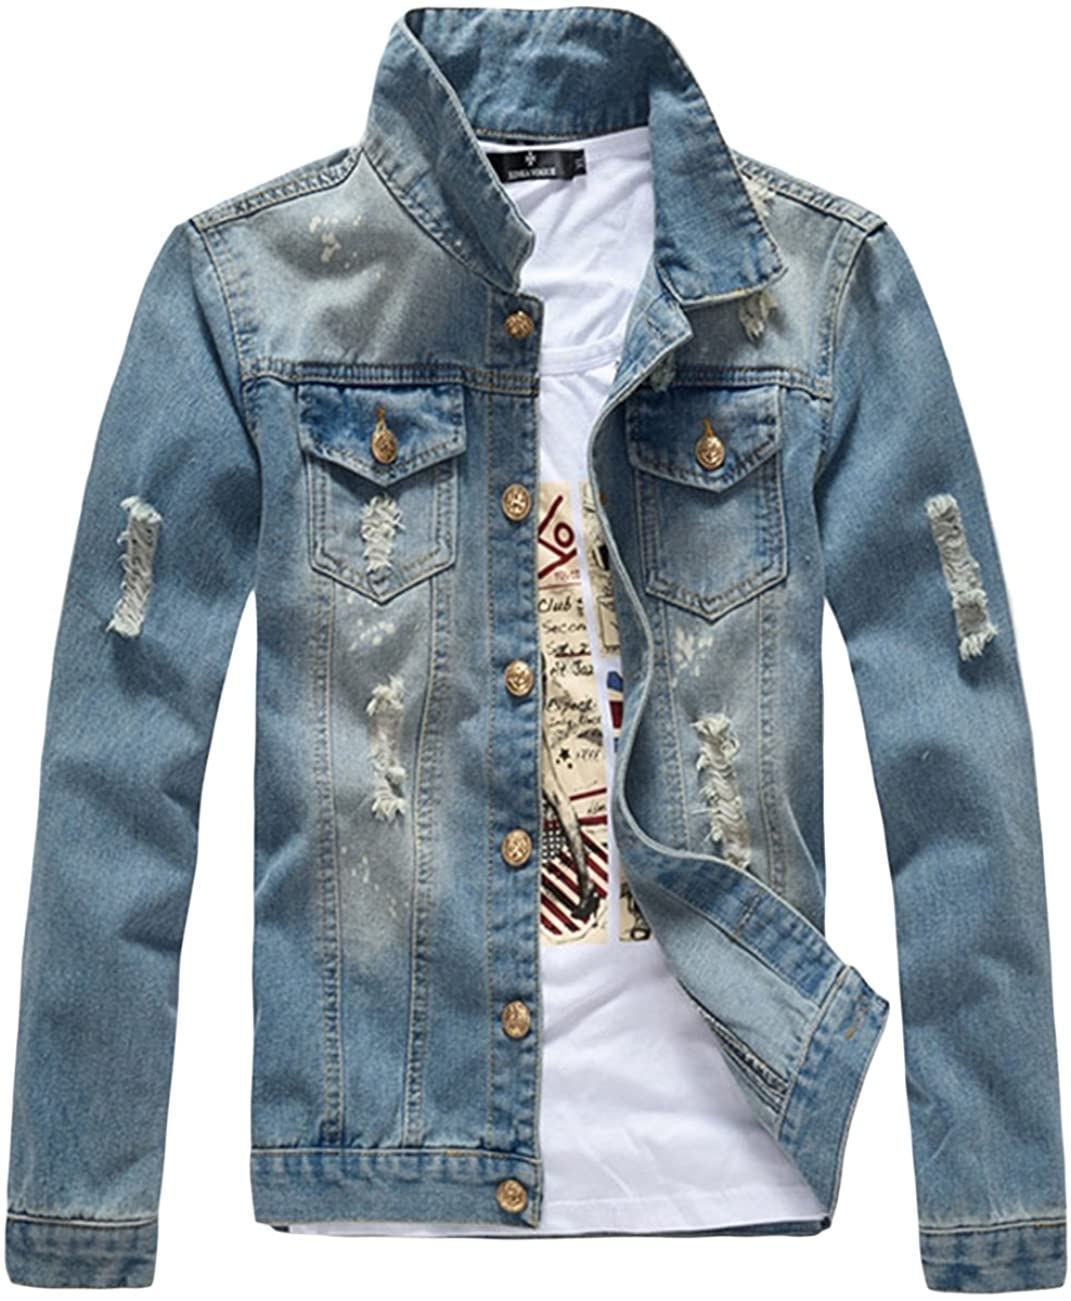 sandbank Men's Classic Button Slim Fit Ripped Washed Denim Jacket Jean Coat